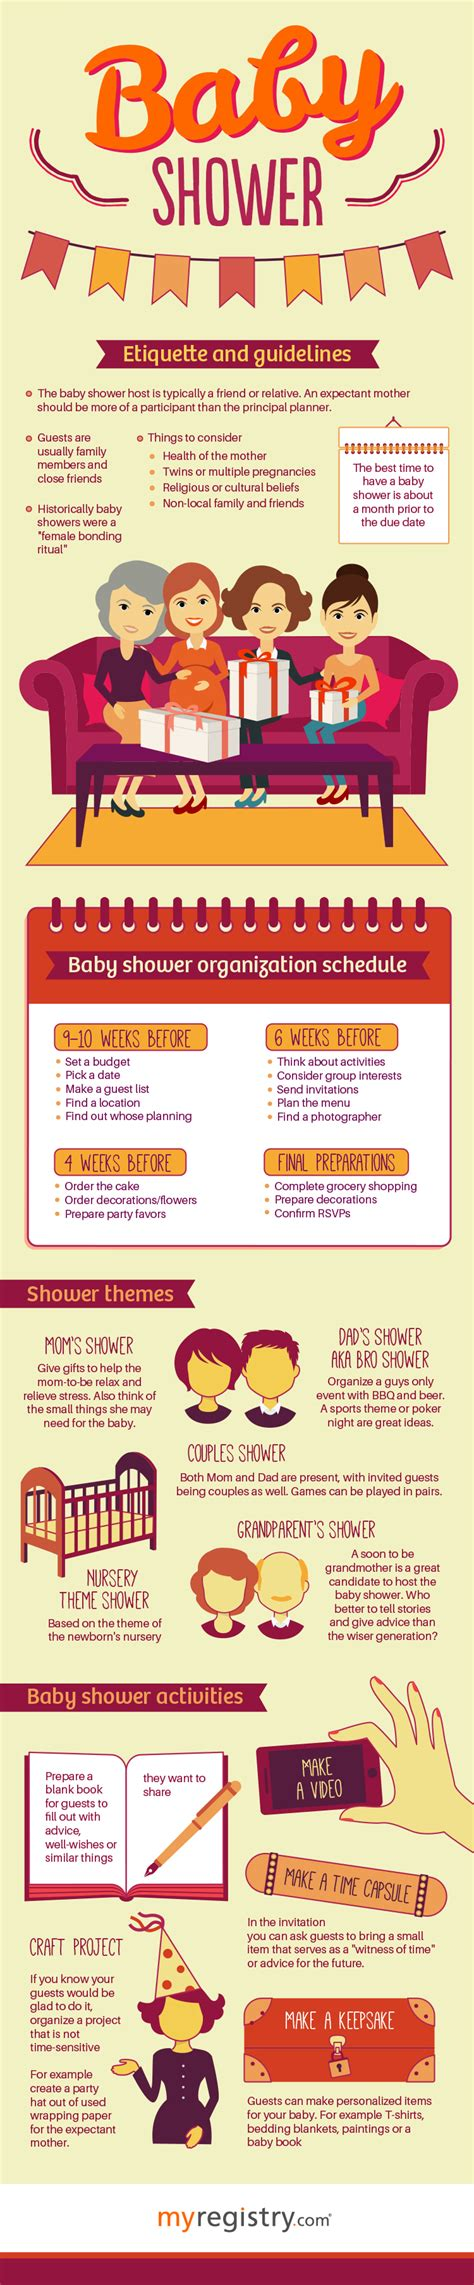 Etiquette On Baby Showers by Baby Shower Etiquette And Guidelines Myregistry